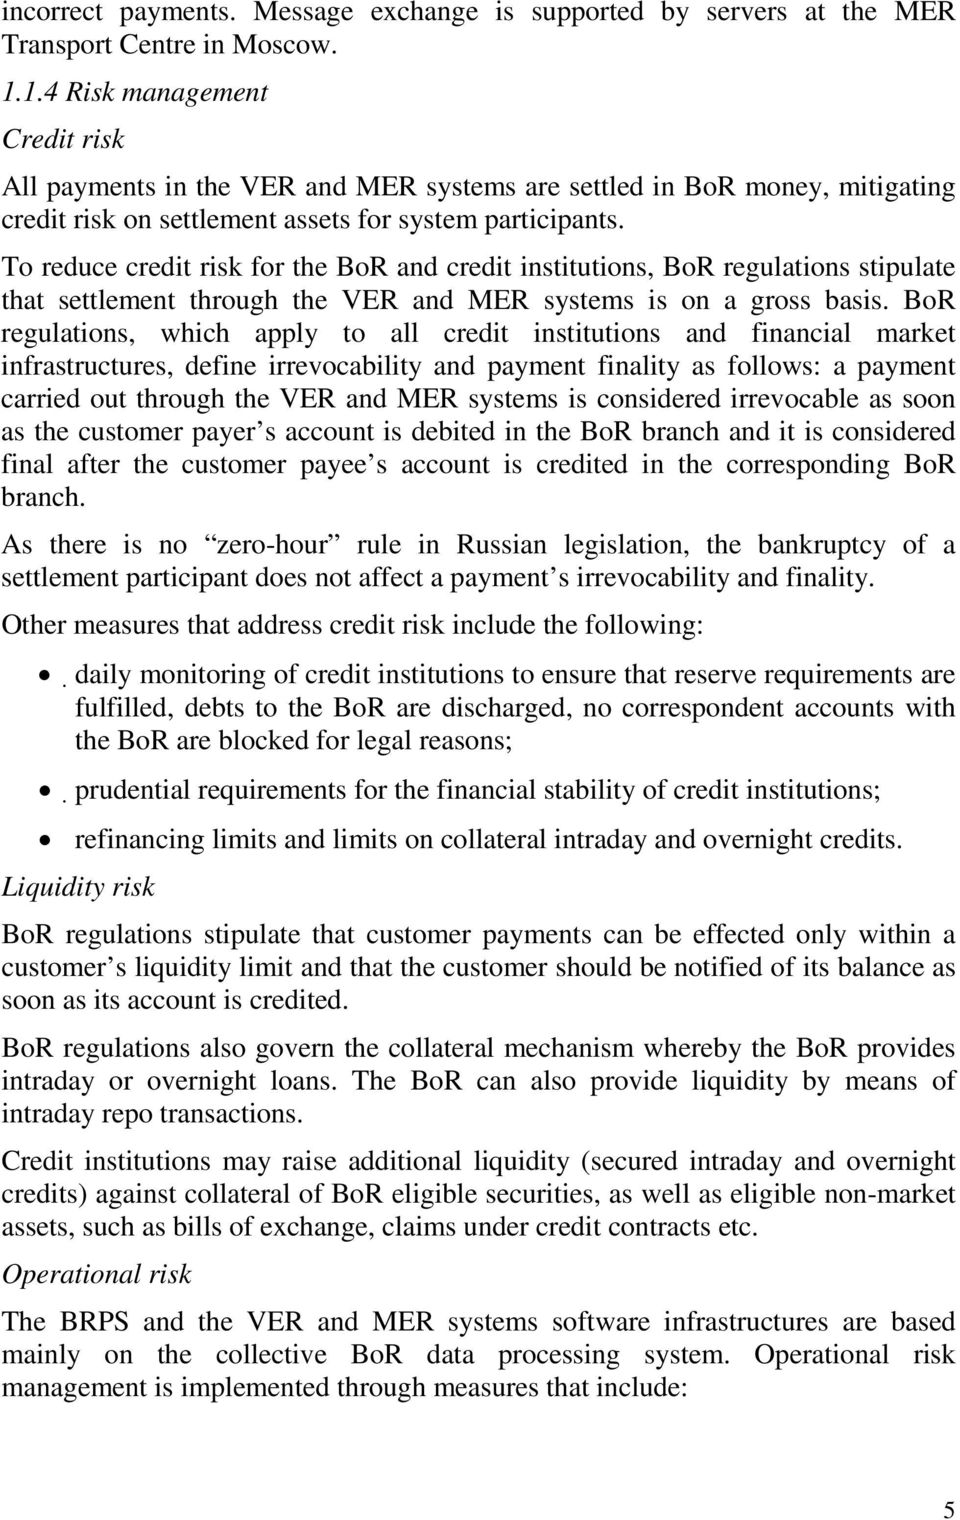 To reduce credit risk for the BoR and credit institutions, BoR regulations stipulate that settlement through the VER and MER systems is on a gross basis.